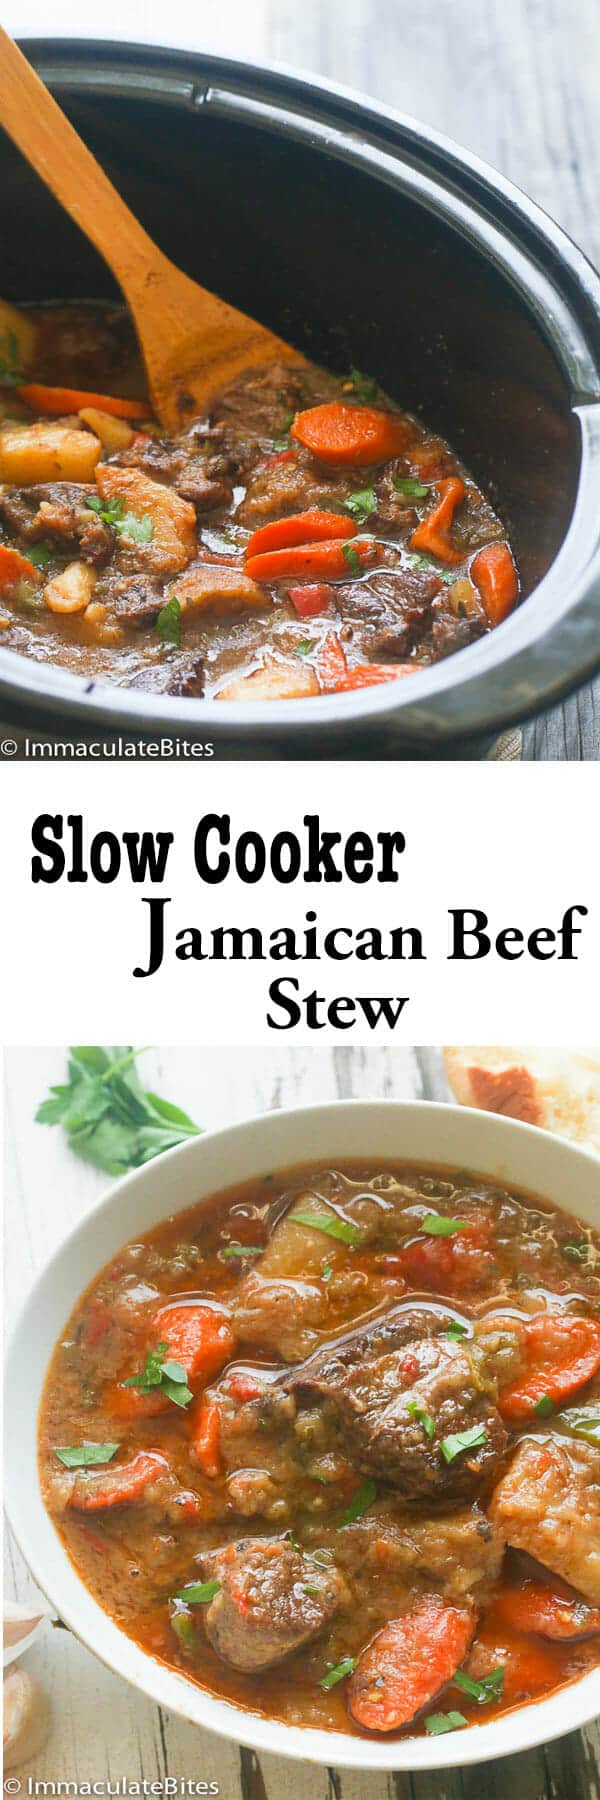 Slow Cooker Jamaican Beef-stew